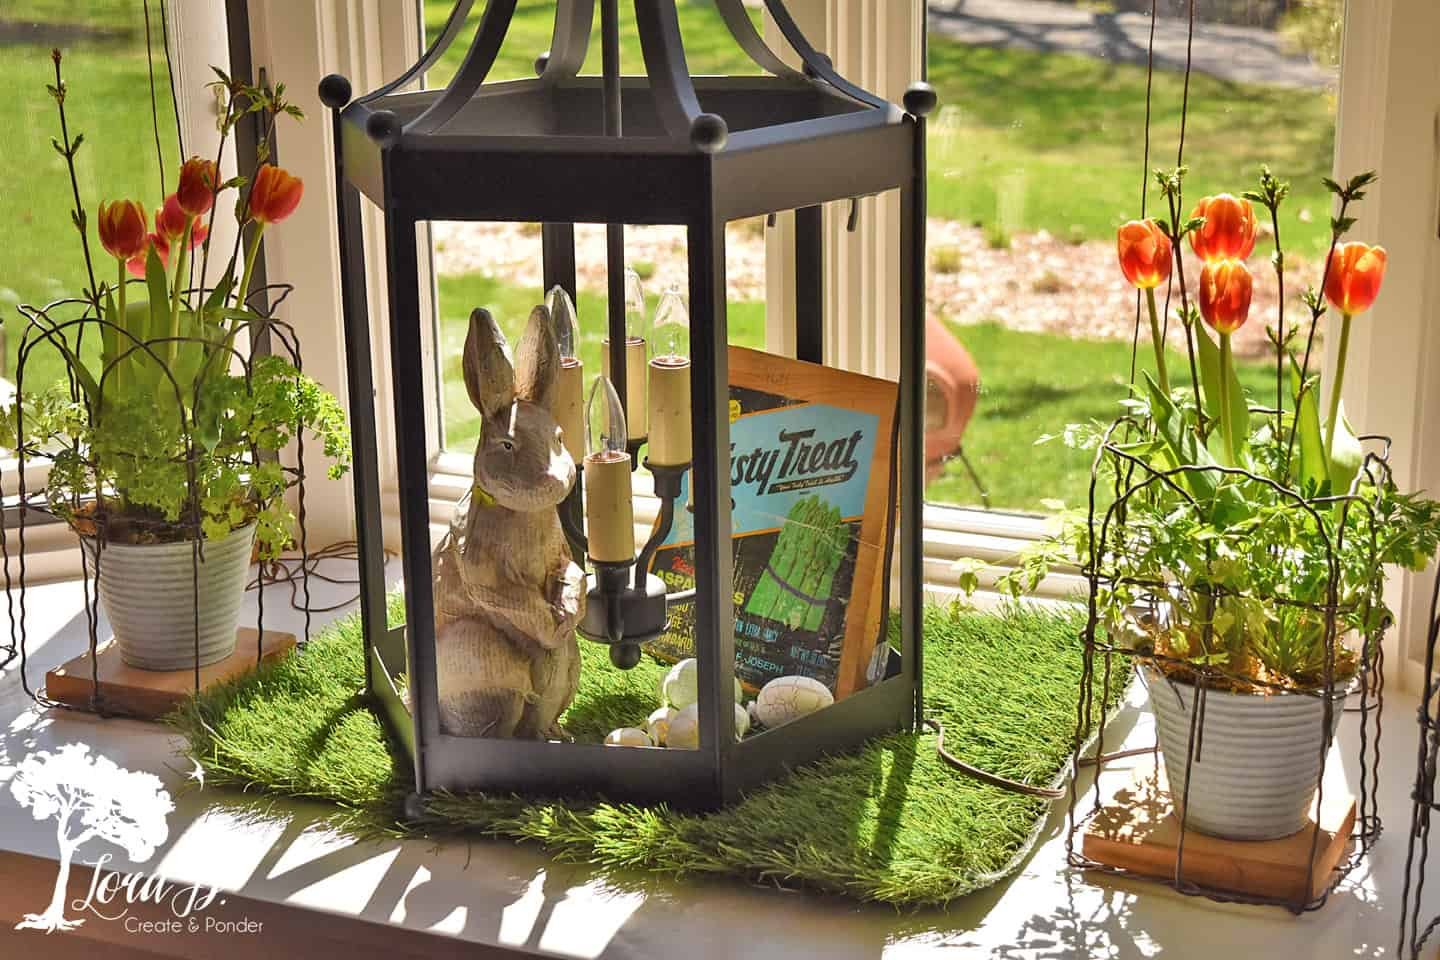 A bunny and tulips.